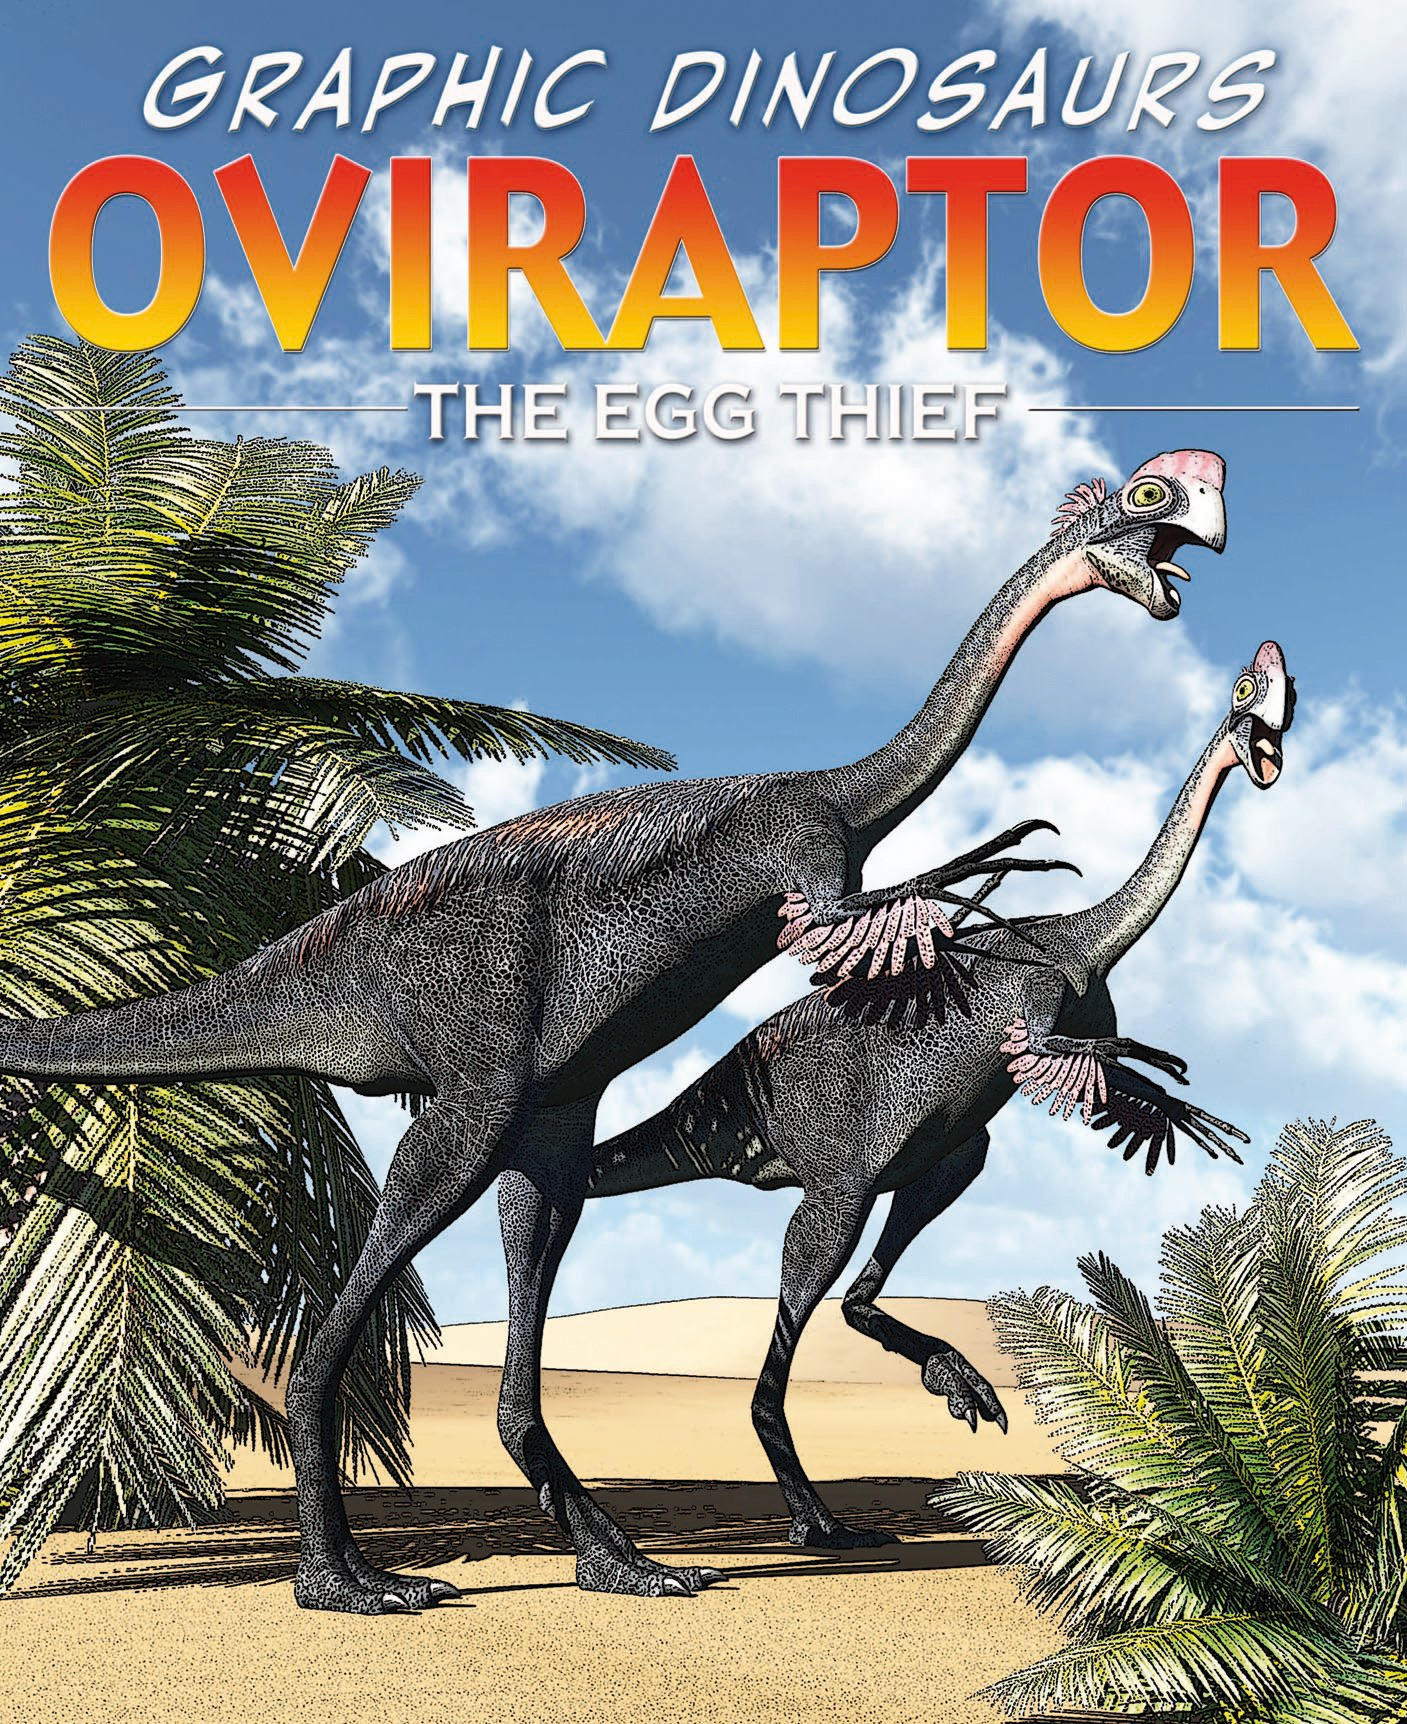 Oviraptor: The Egg Thief (Graphic Dinosaurs) by Powerkids Pr (Image #1)